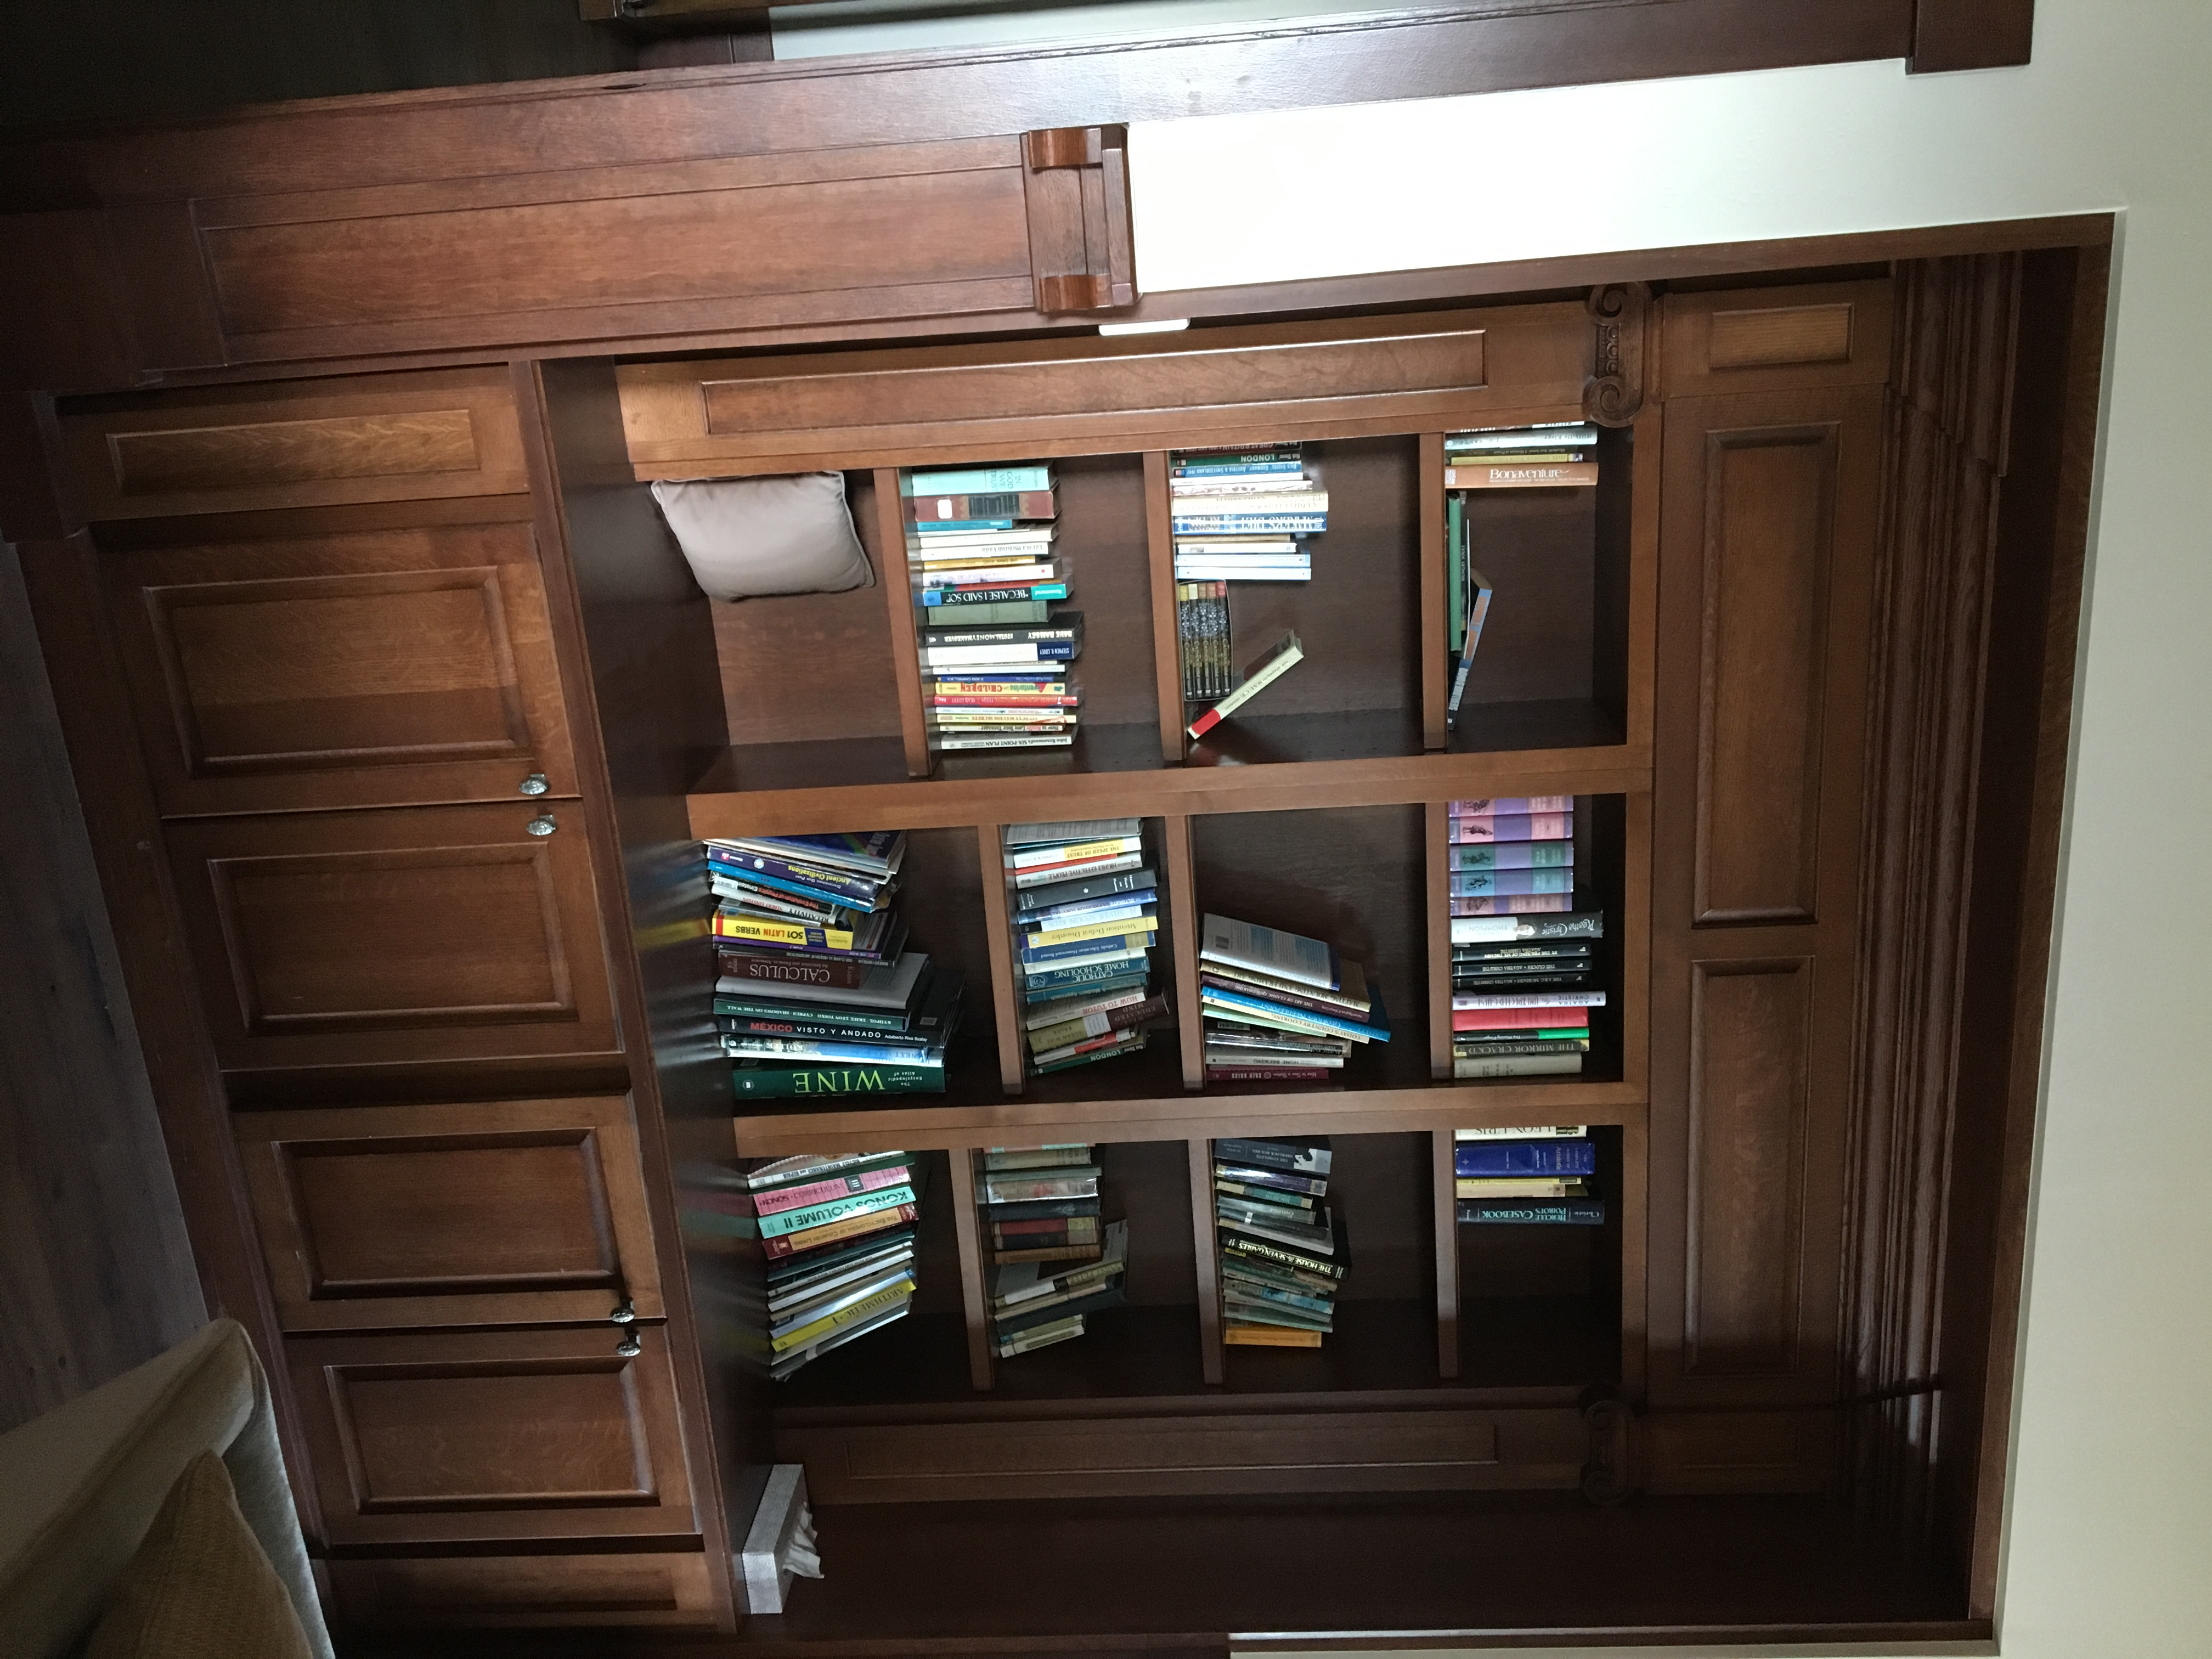 The Master bookcases